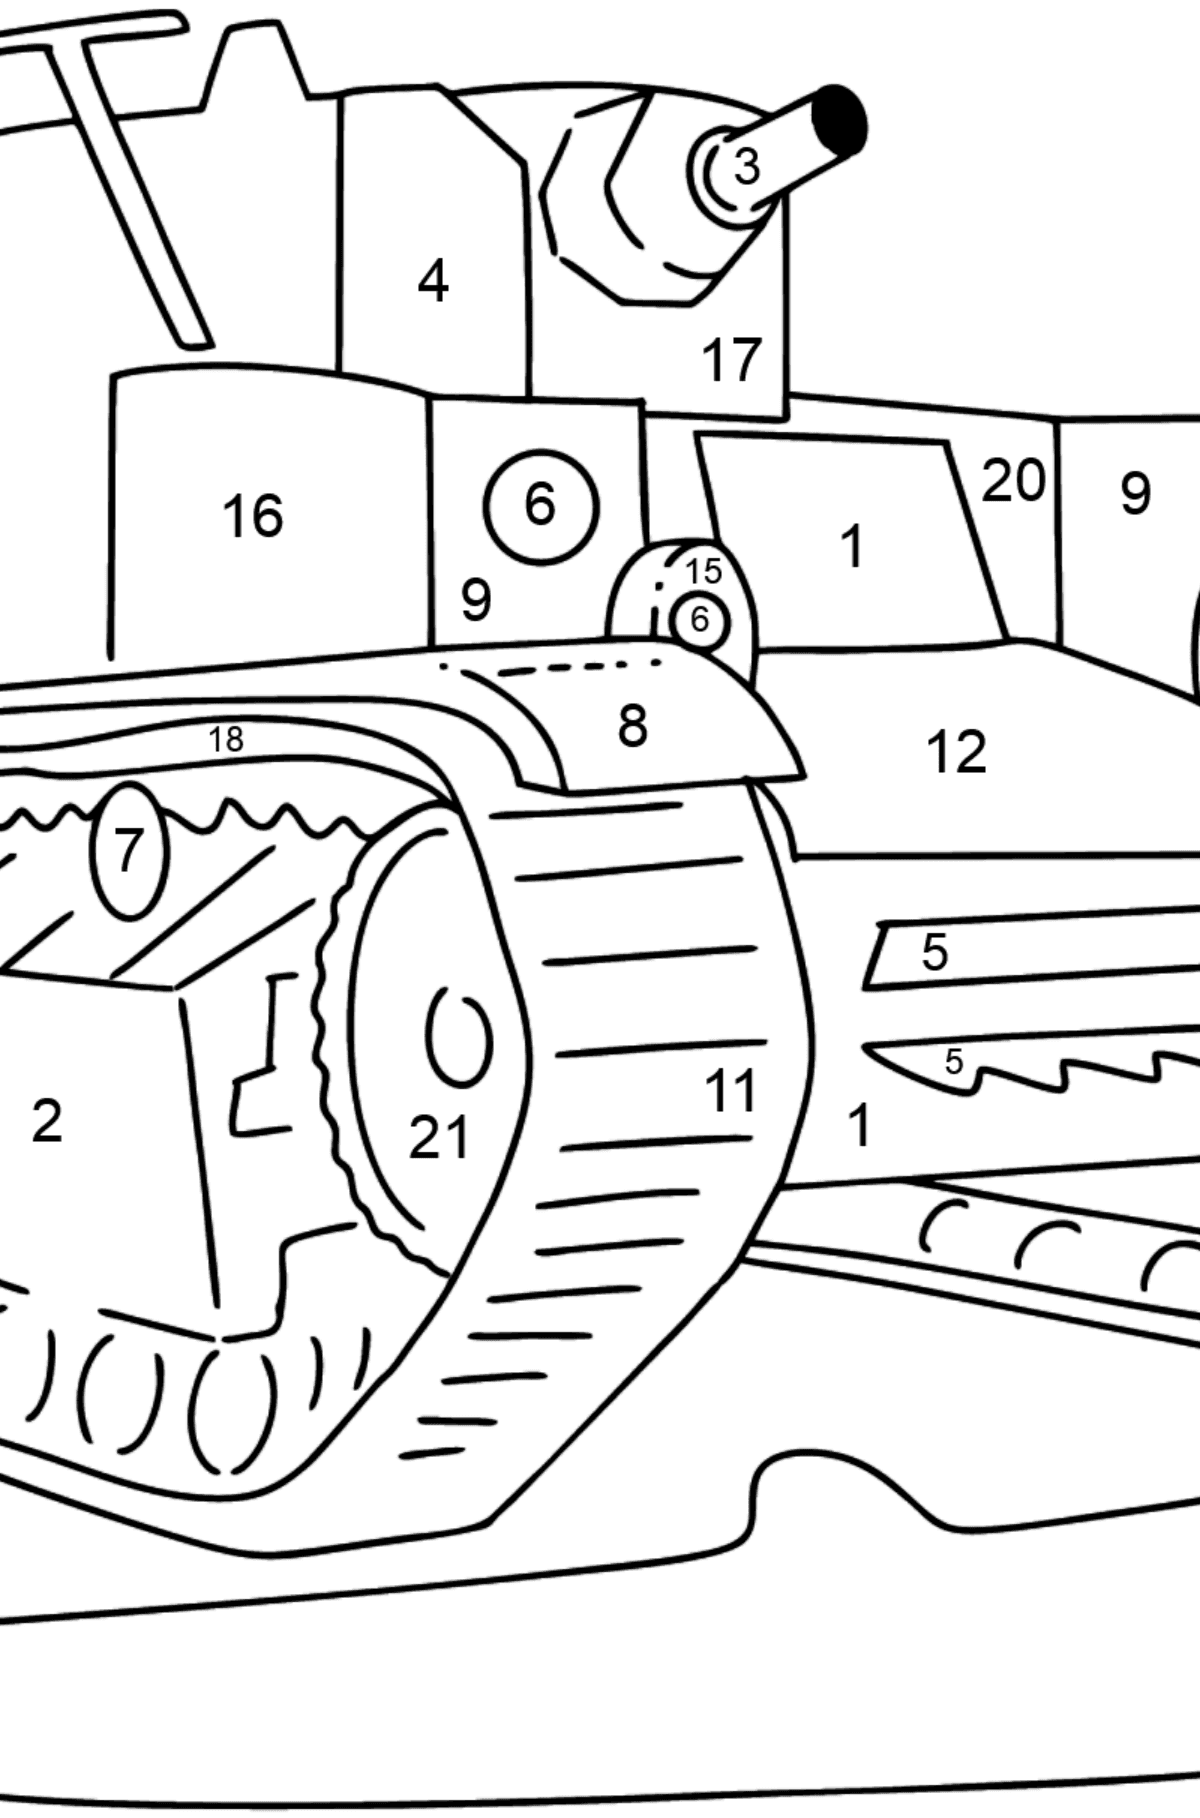 Tank T 28 coloring page - Coloring by Numbers for Kids